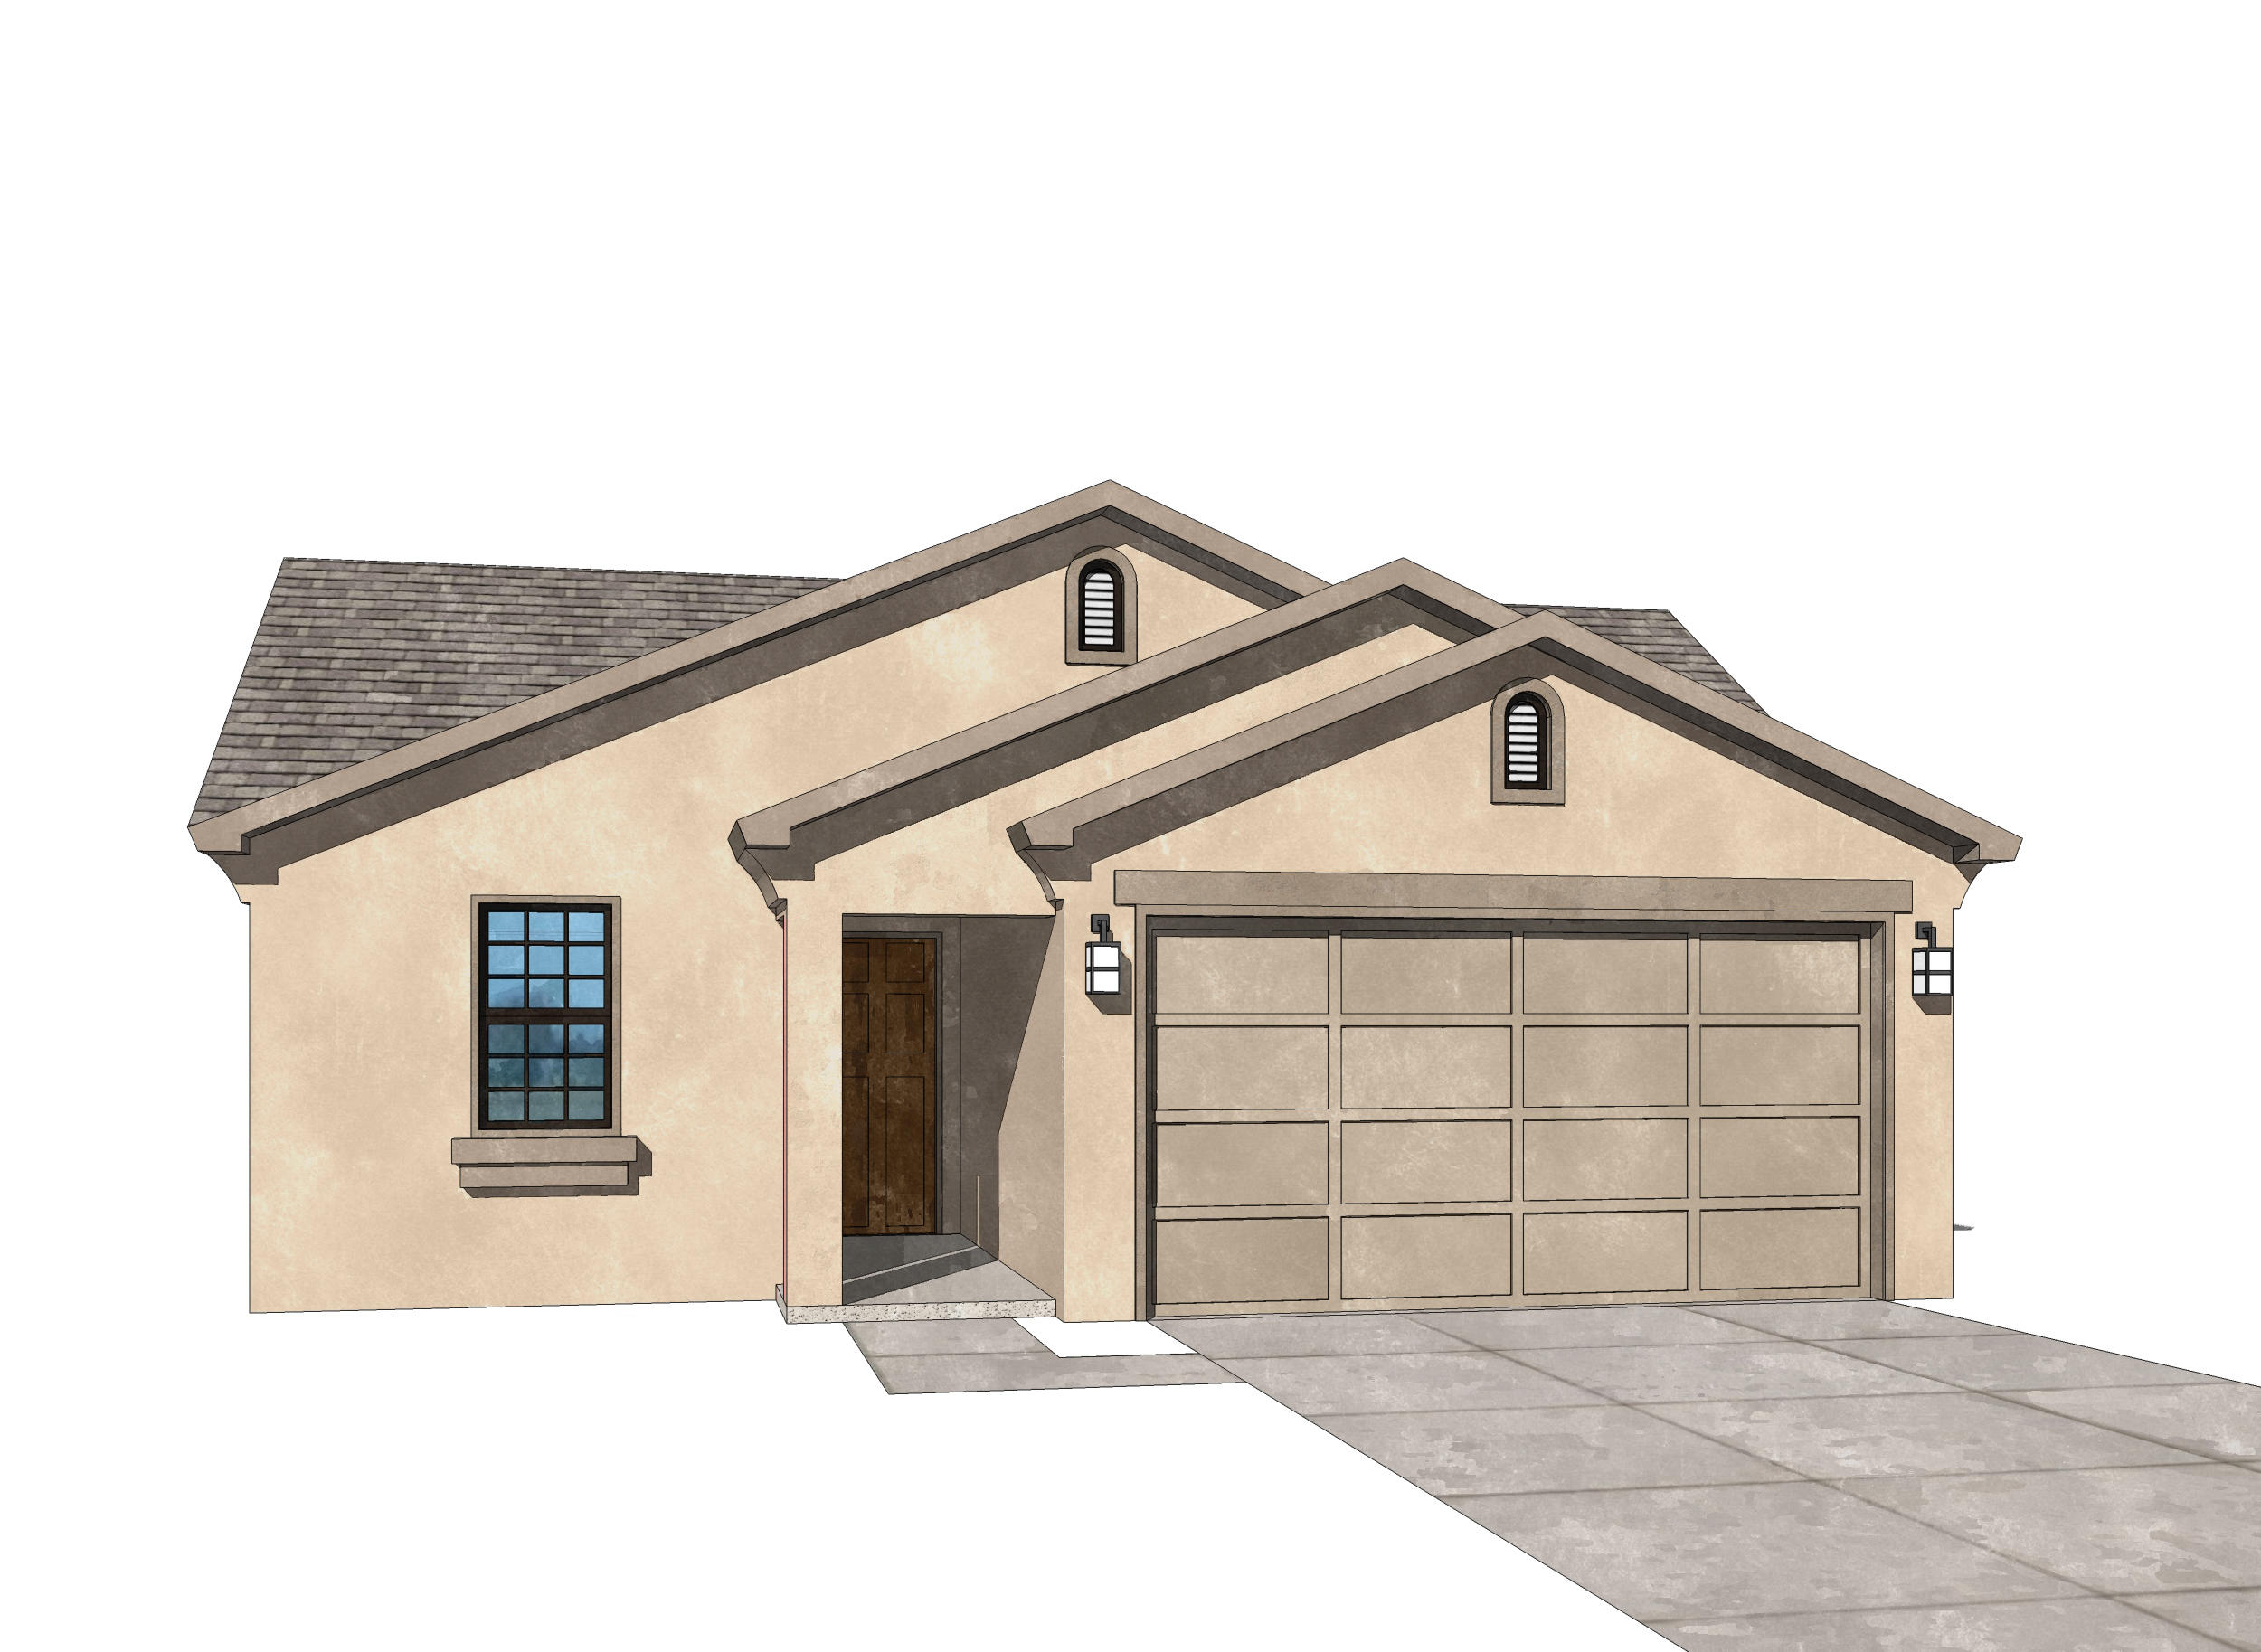 UNDER CONSTUCTION for October move in. Pictures are model representations. Colors and selections may vary. Living area features double sliders opening to covered patio with gas FP. Granite in Kitchen & baths, ceramic tile surrounds in shower and bath, Samsung SS appliances including gas stove, microwave, SxS refrigerator, dishwasher and washer and dryer (in white). Blinds throughout, 10' ceilings, coffered in living and master, ceramic tile floors in entry, kitchen, baths, and laundry room as well as dining area. 8' tall oversized garage door w/opener included, recessed LED disc lighting. Energy efficient NM Silver rated with LowE, vinyl dual pane windows, 95% efficient gas furnace.Dual wall and rain head shower heads in master. Don't miss thi